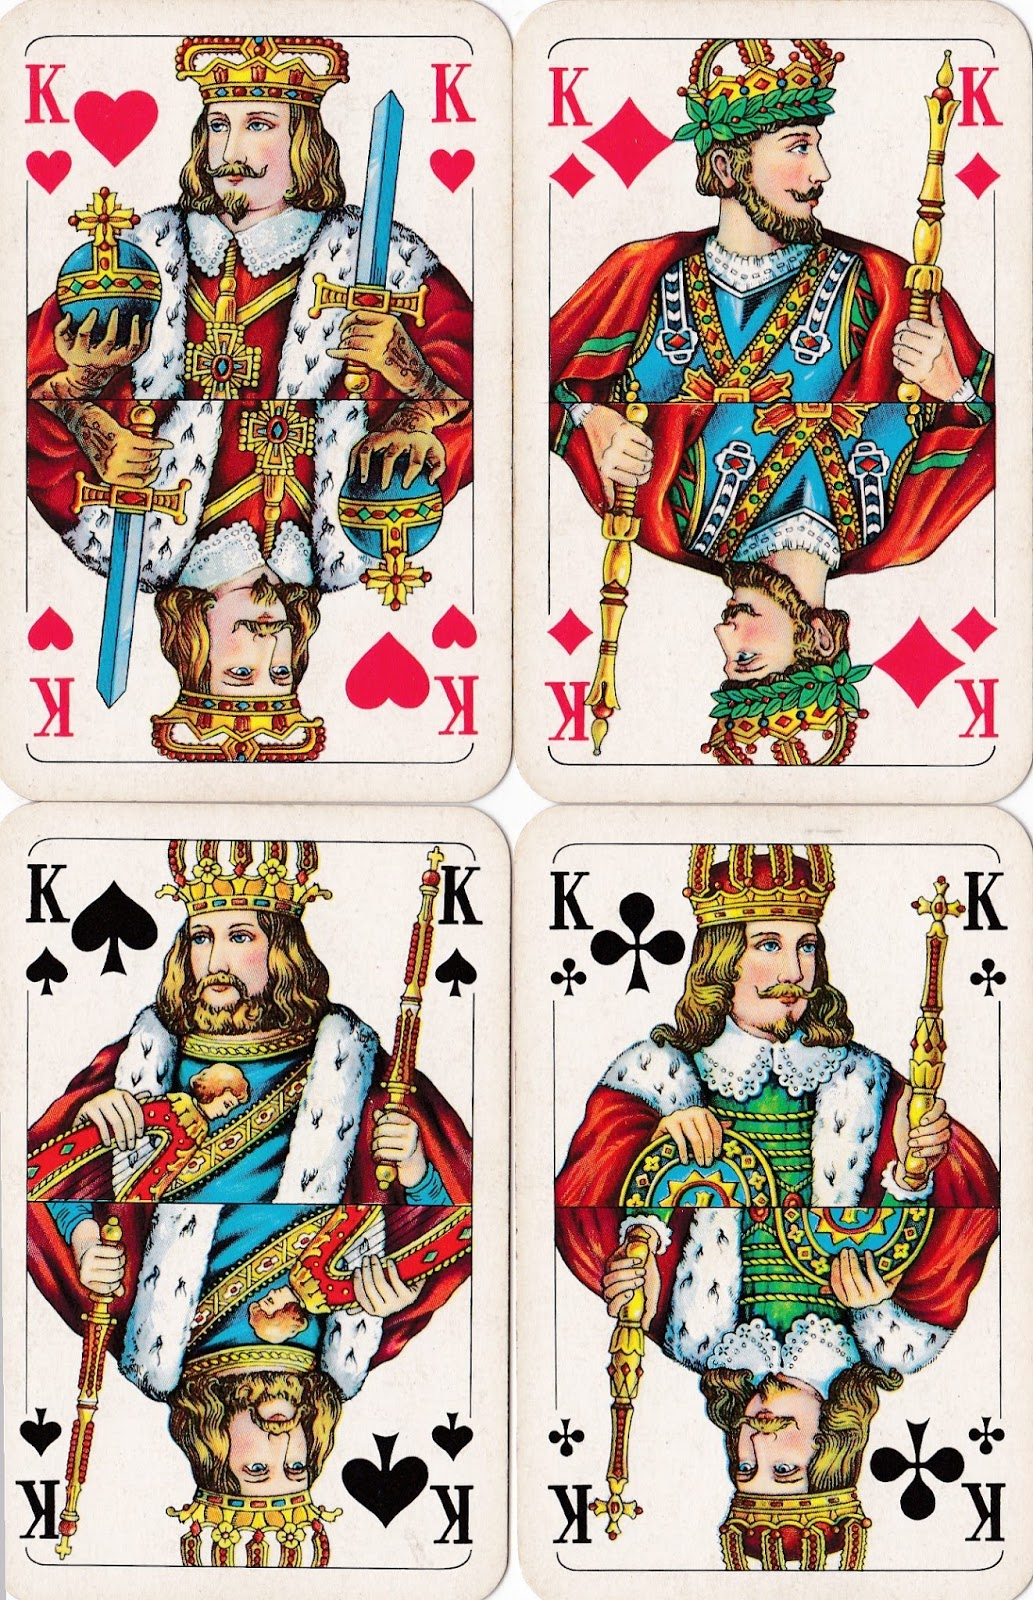 Image result for Each king in a deck of playing cards represents a great king from history: Spades - King David /Hearts - Charlemagne /Clubs -Alexander The Great / Diamonds - Julius Caesar.